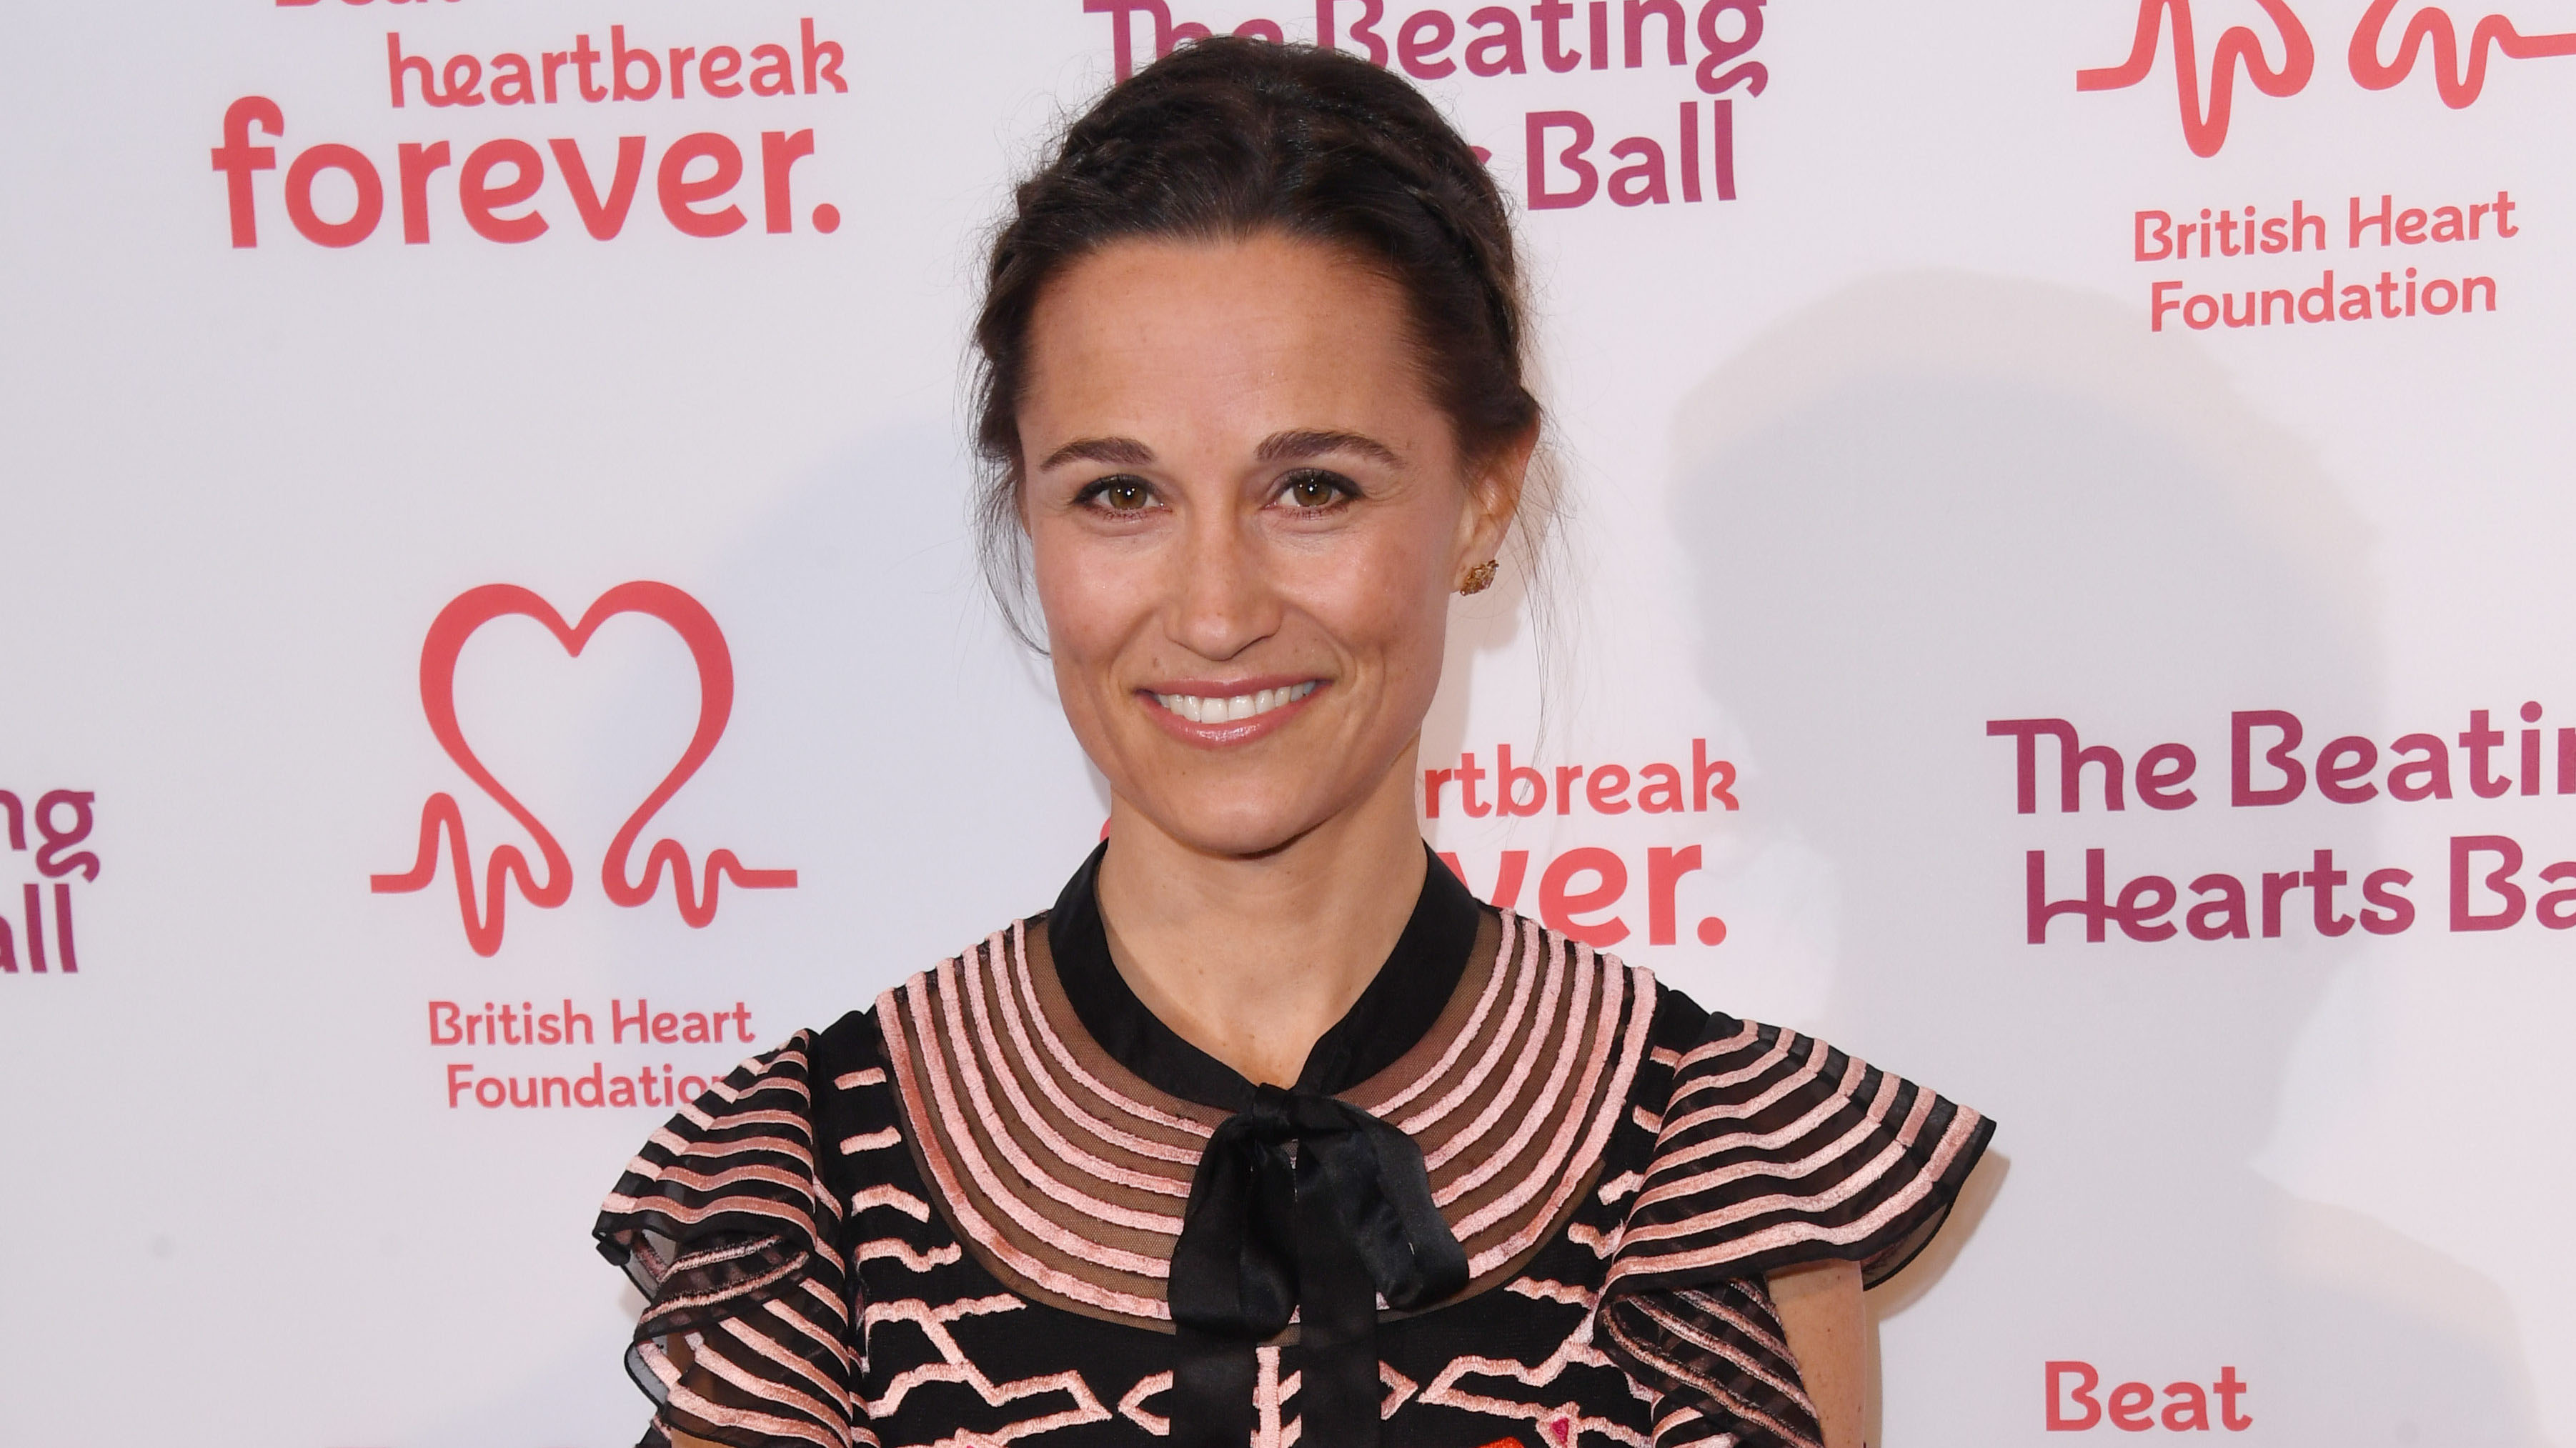 Pippa Middleton Shows off Amazing Post-Baby Body in Red Carpet Pics 4 Months After Giving Birth — Look!